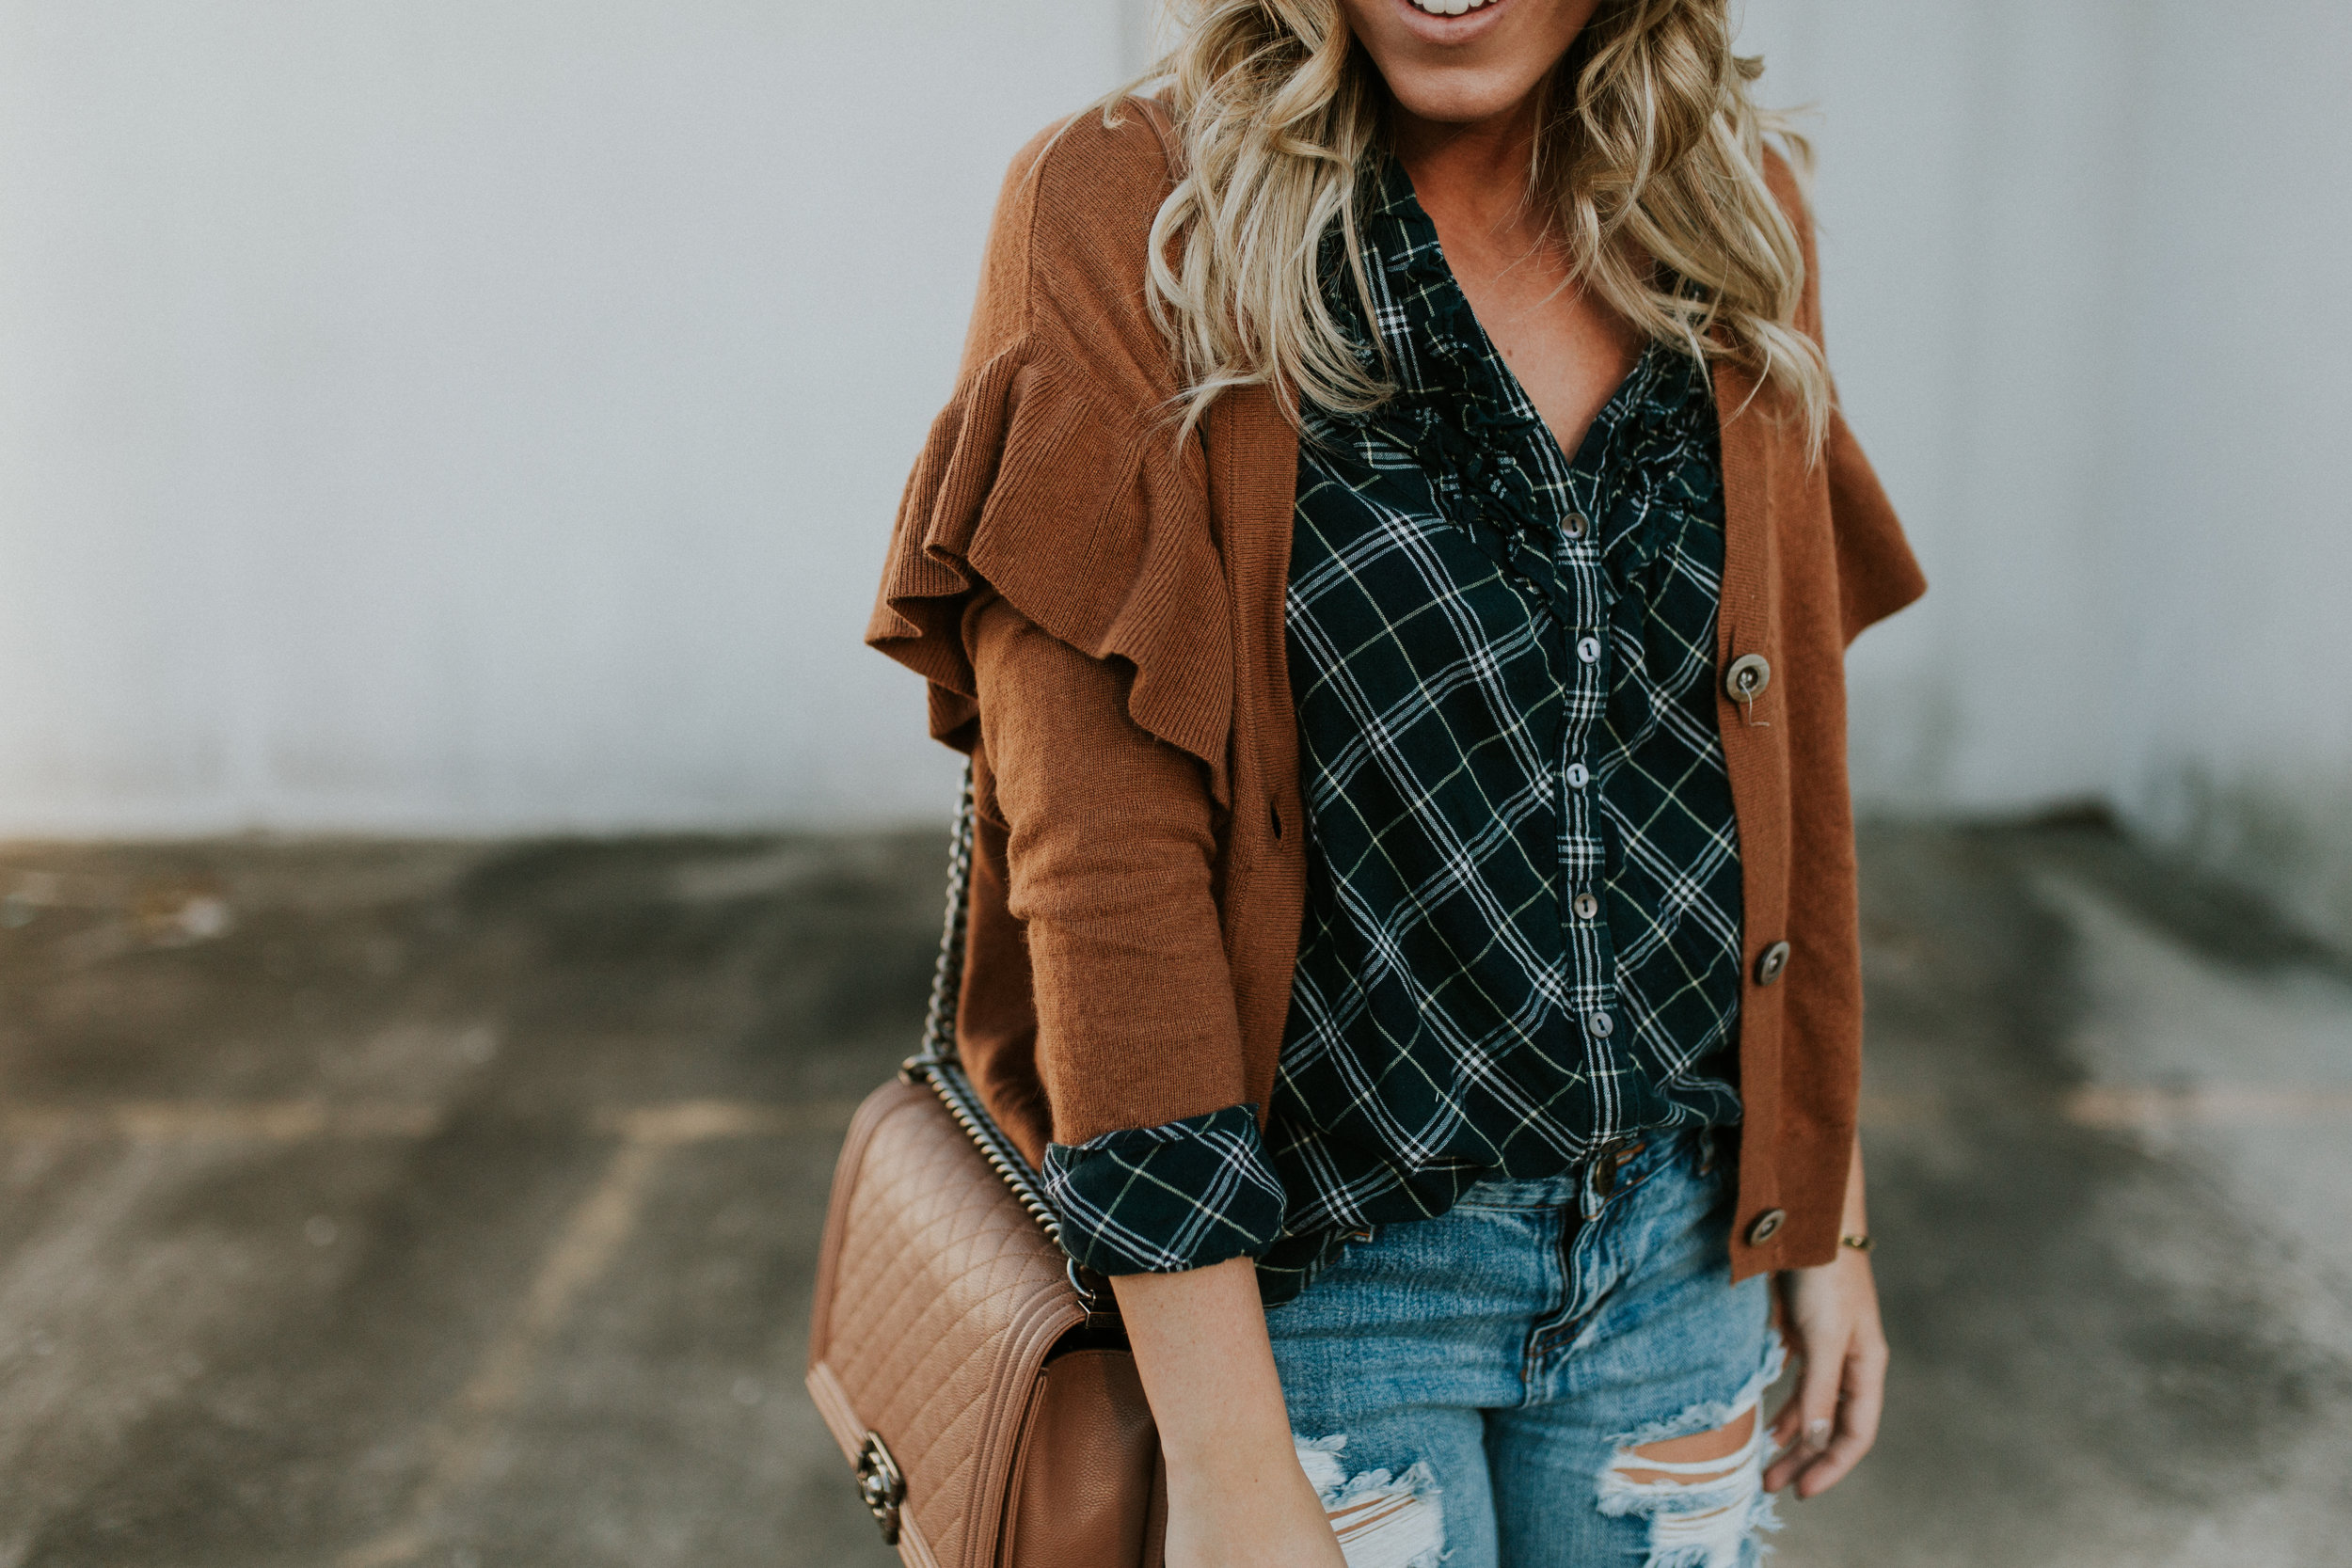 Blogger Gracefully Taylored in One Teaspoon Denim, Anthropologie Sweater and Plaid Top(25).jpg